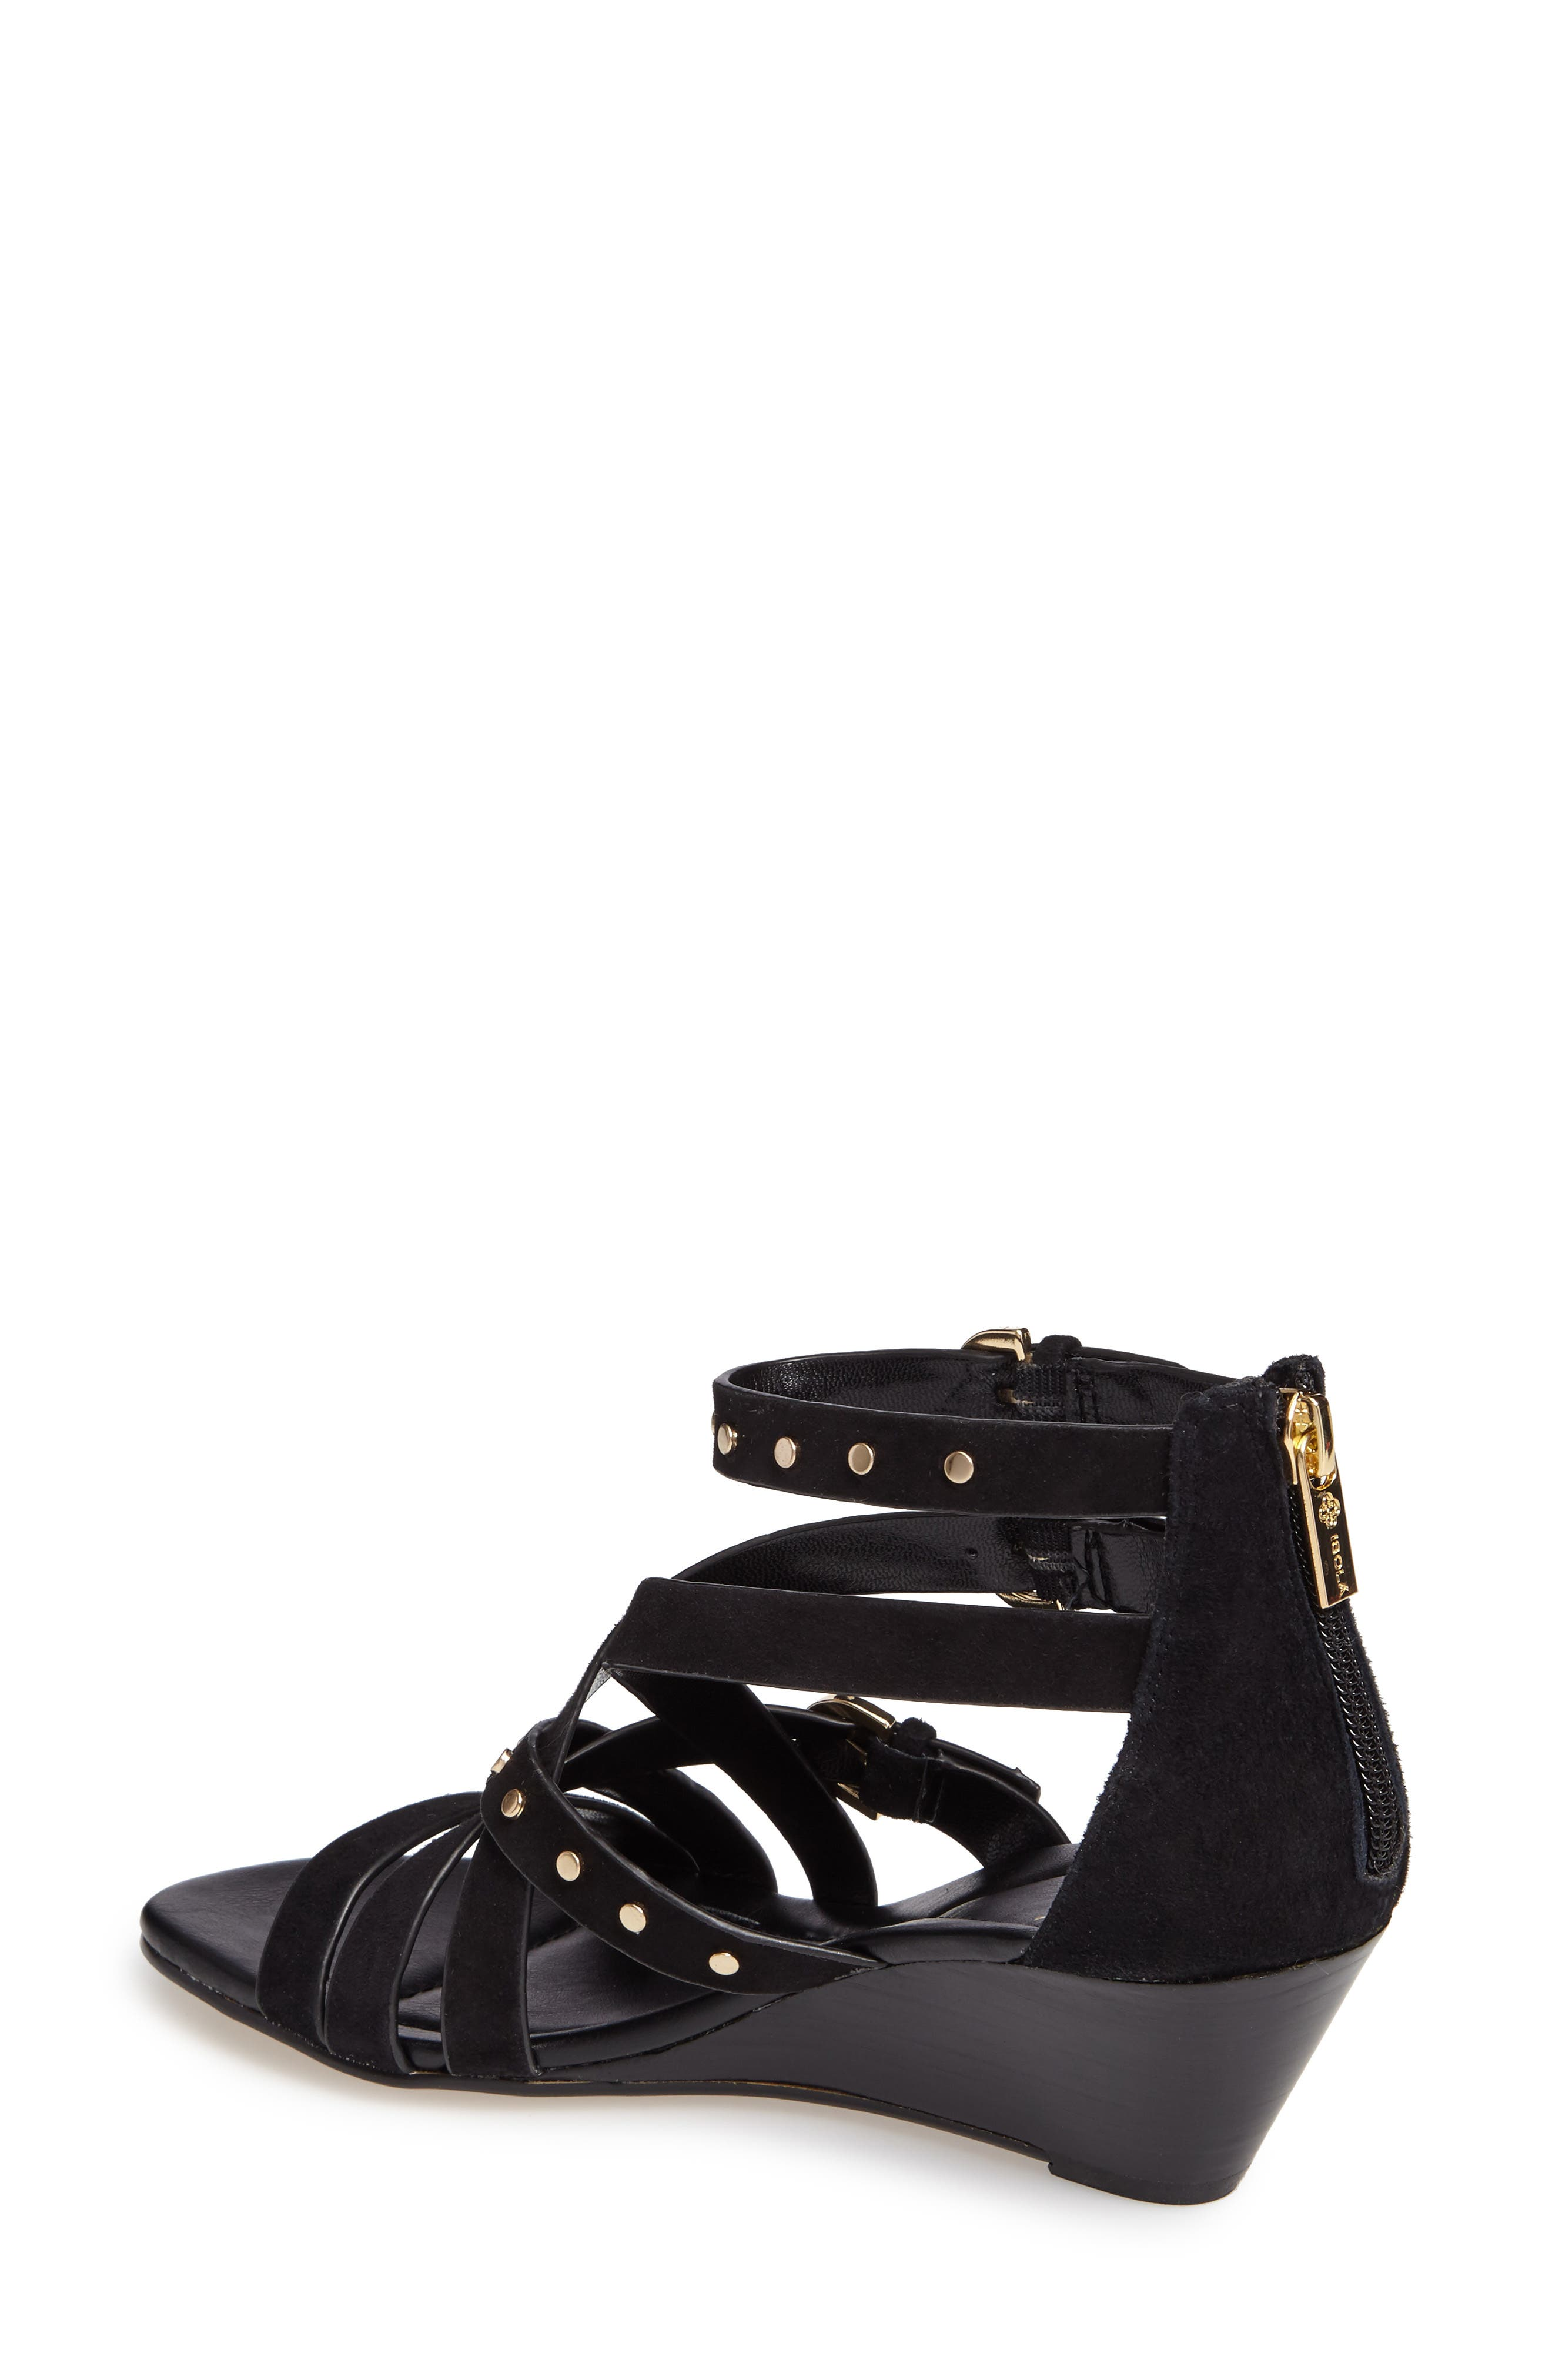 ISOLÁ, Petra Strappy Wedge Sandal, Alternate thumbnail 2, color, BLACK LEATHER